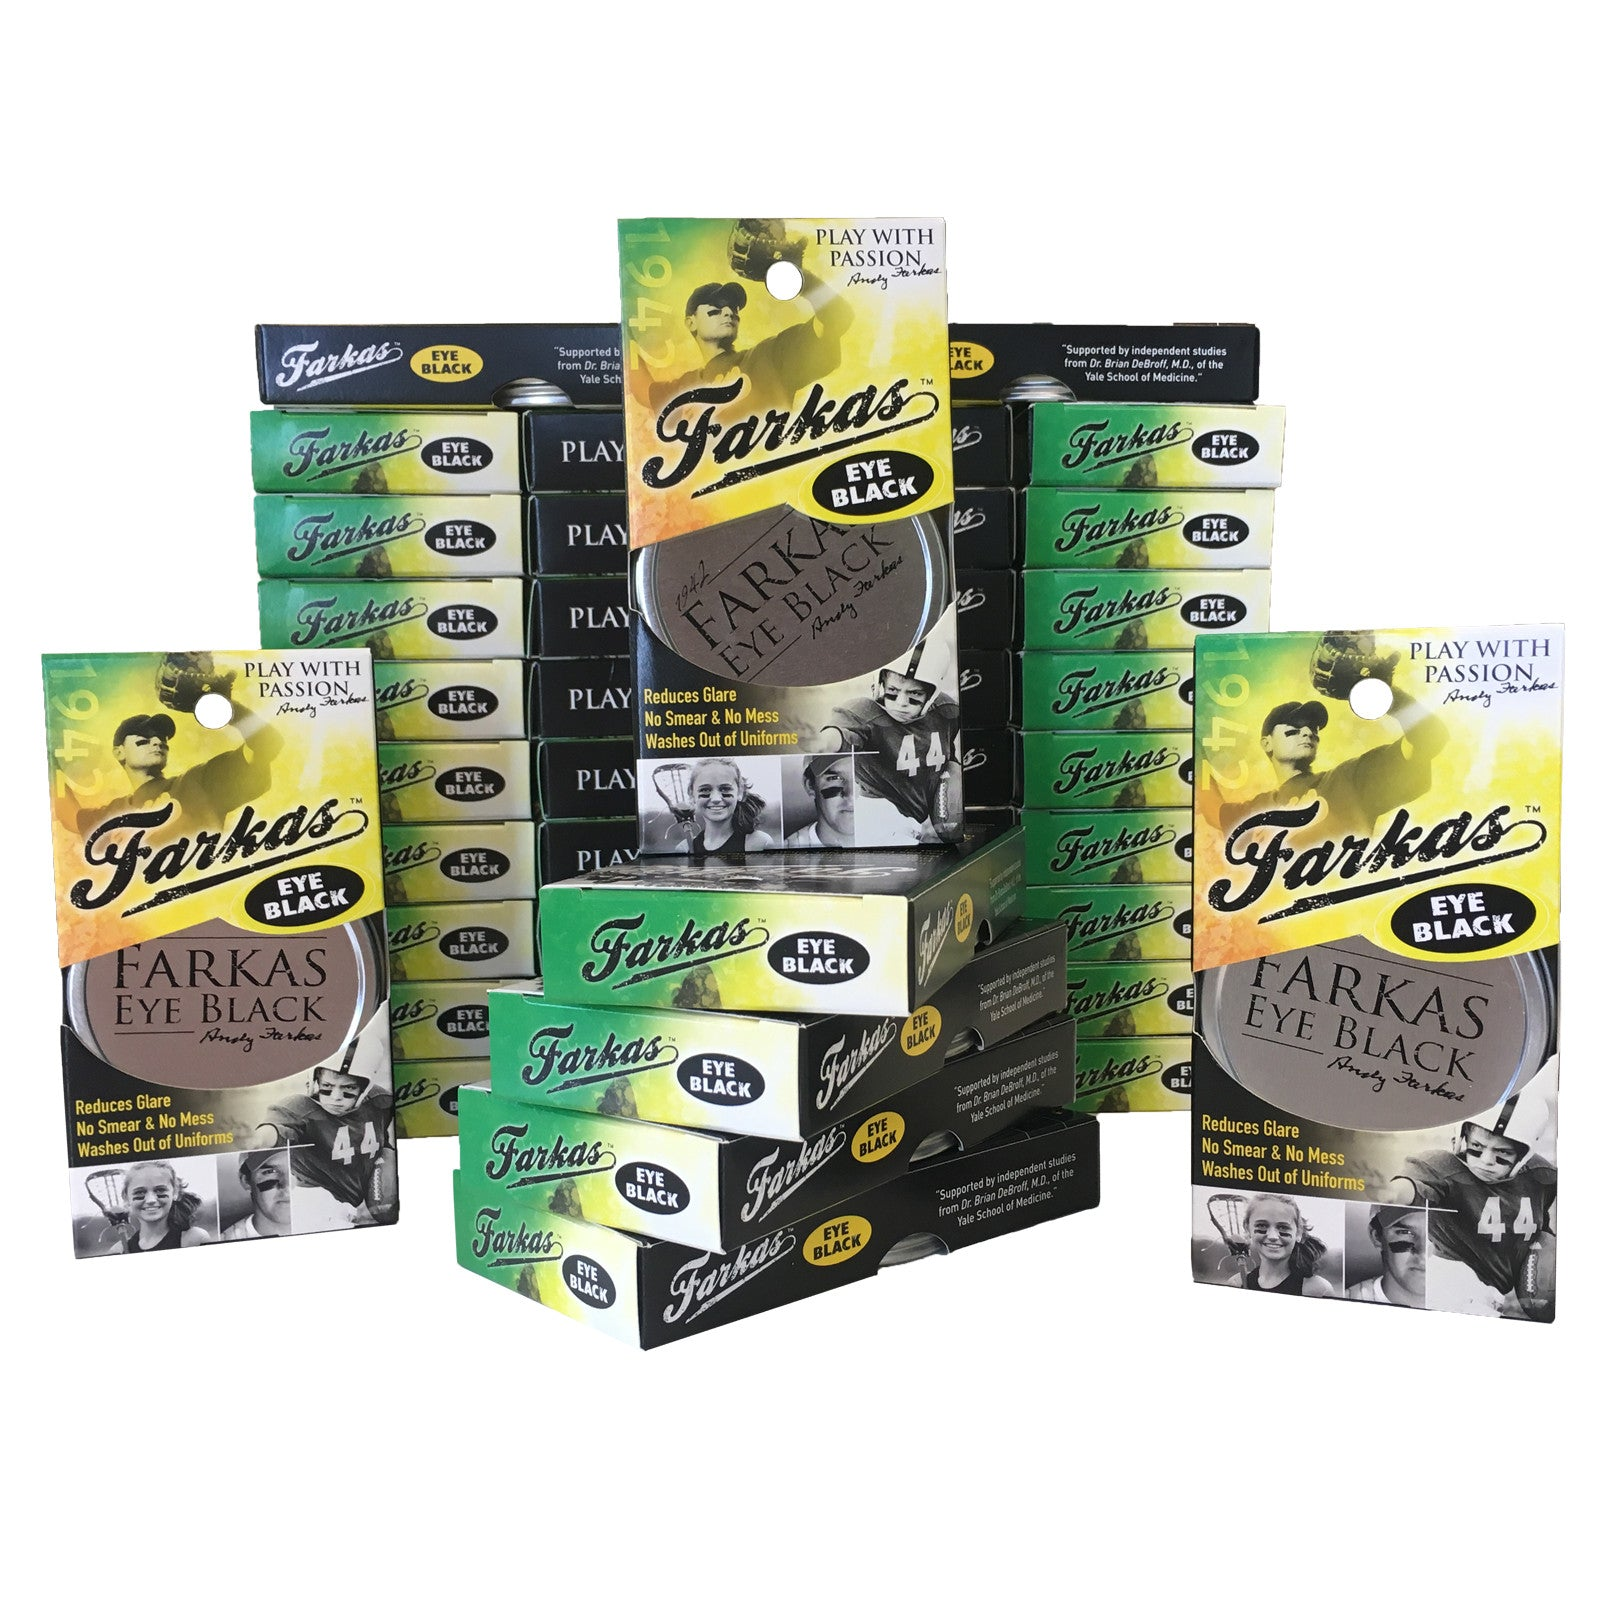 Farkas Eye Black- 2 box (24 tins)